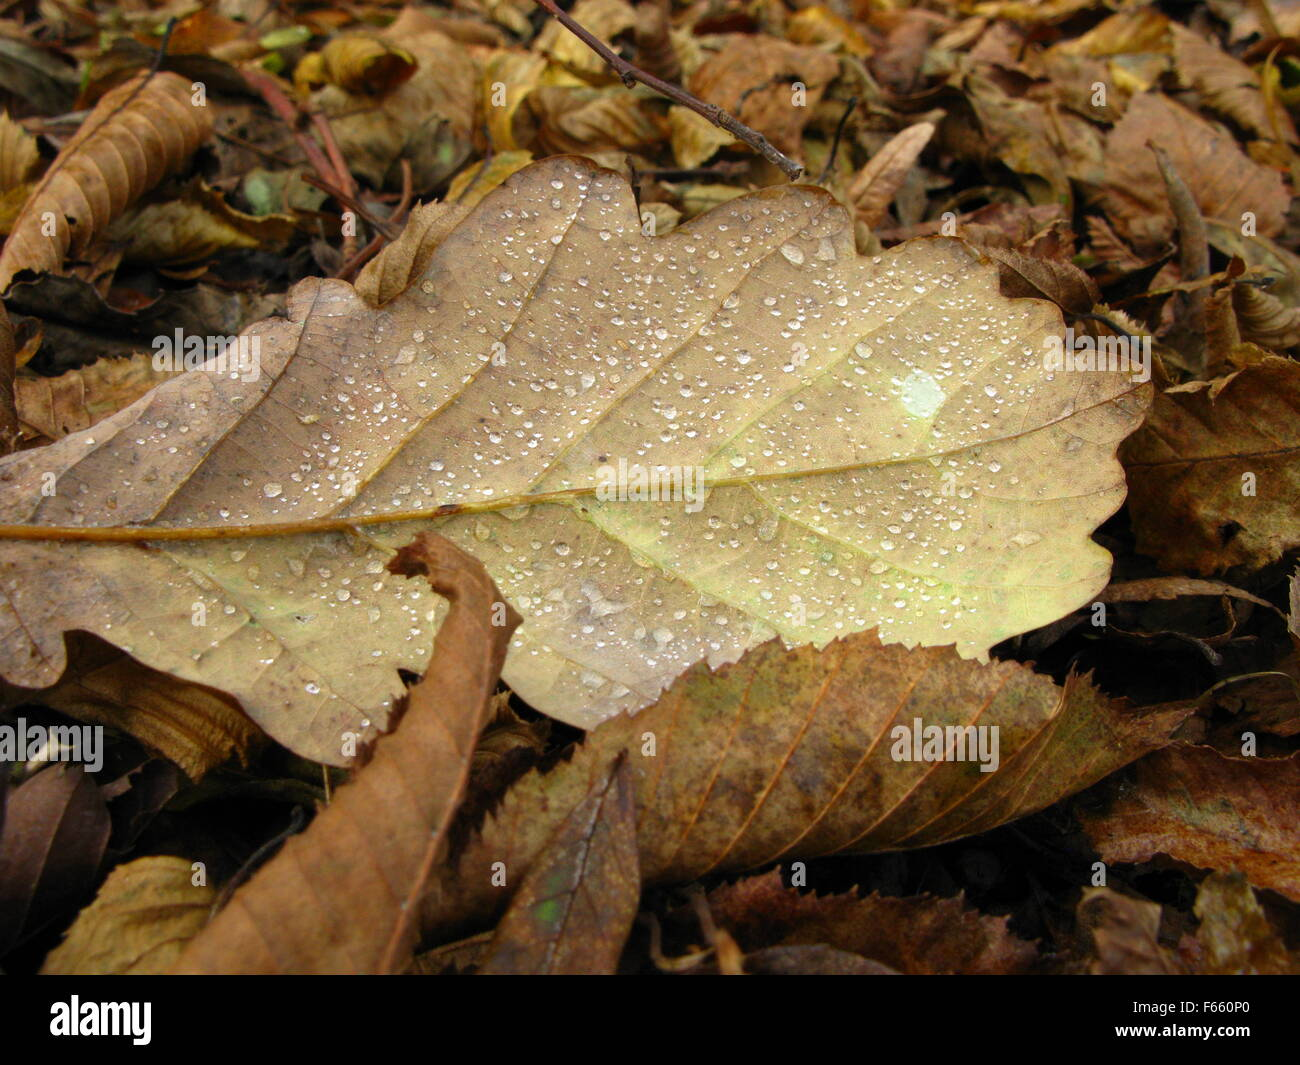 A close up of autumn leaves. A brown oak leaf covered in dewdrops and lit by the sun is in the center. - Stock Image